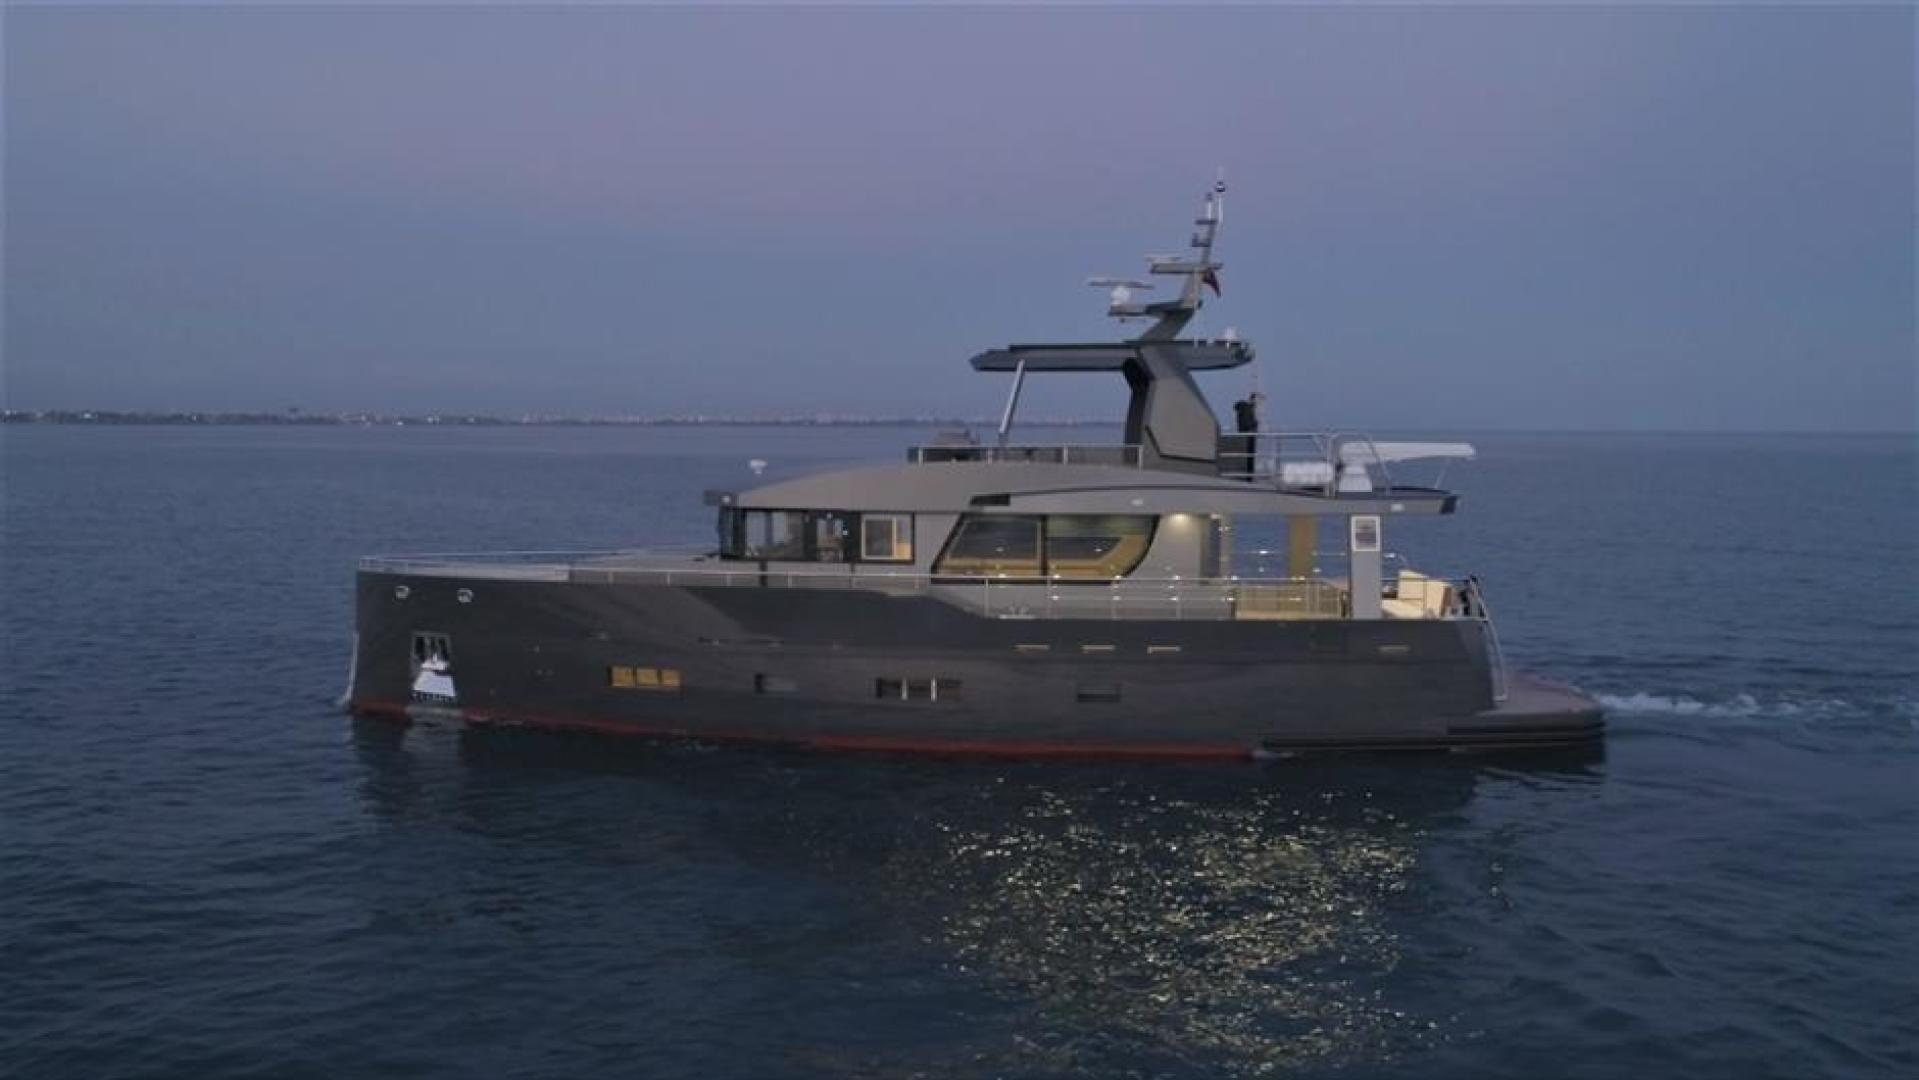 Bering-Expedition Yacht 2019-Expedition Yacht Turkey-1405109   Thumbnail